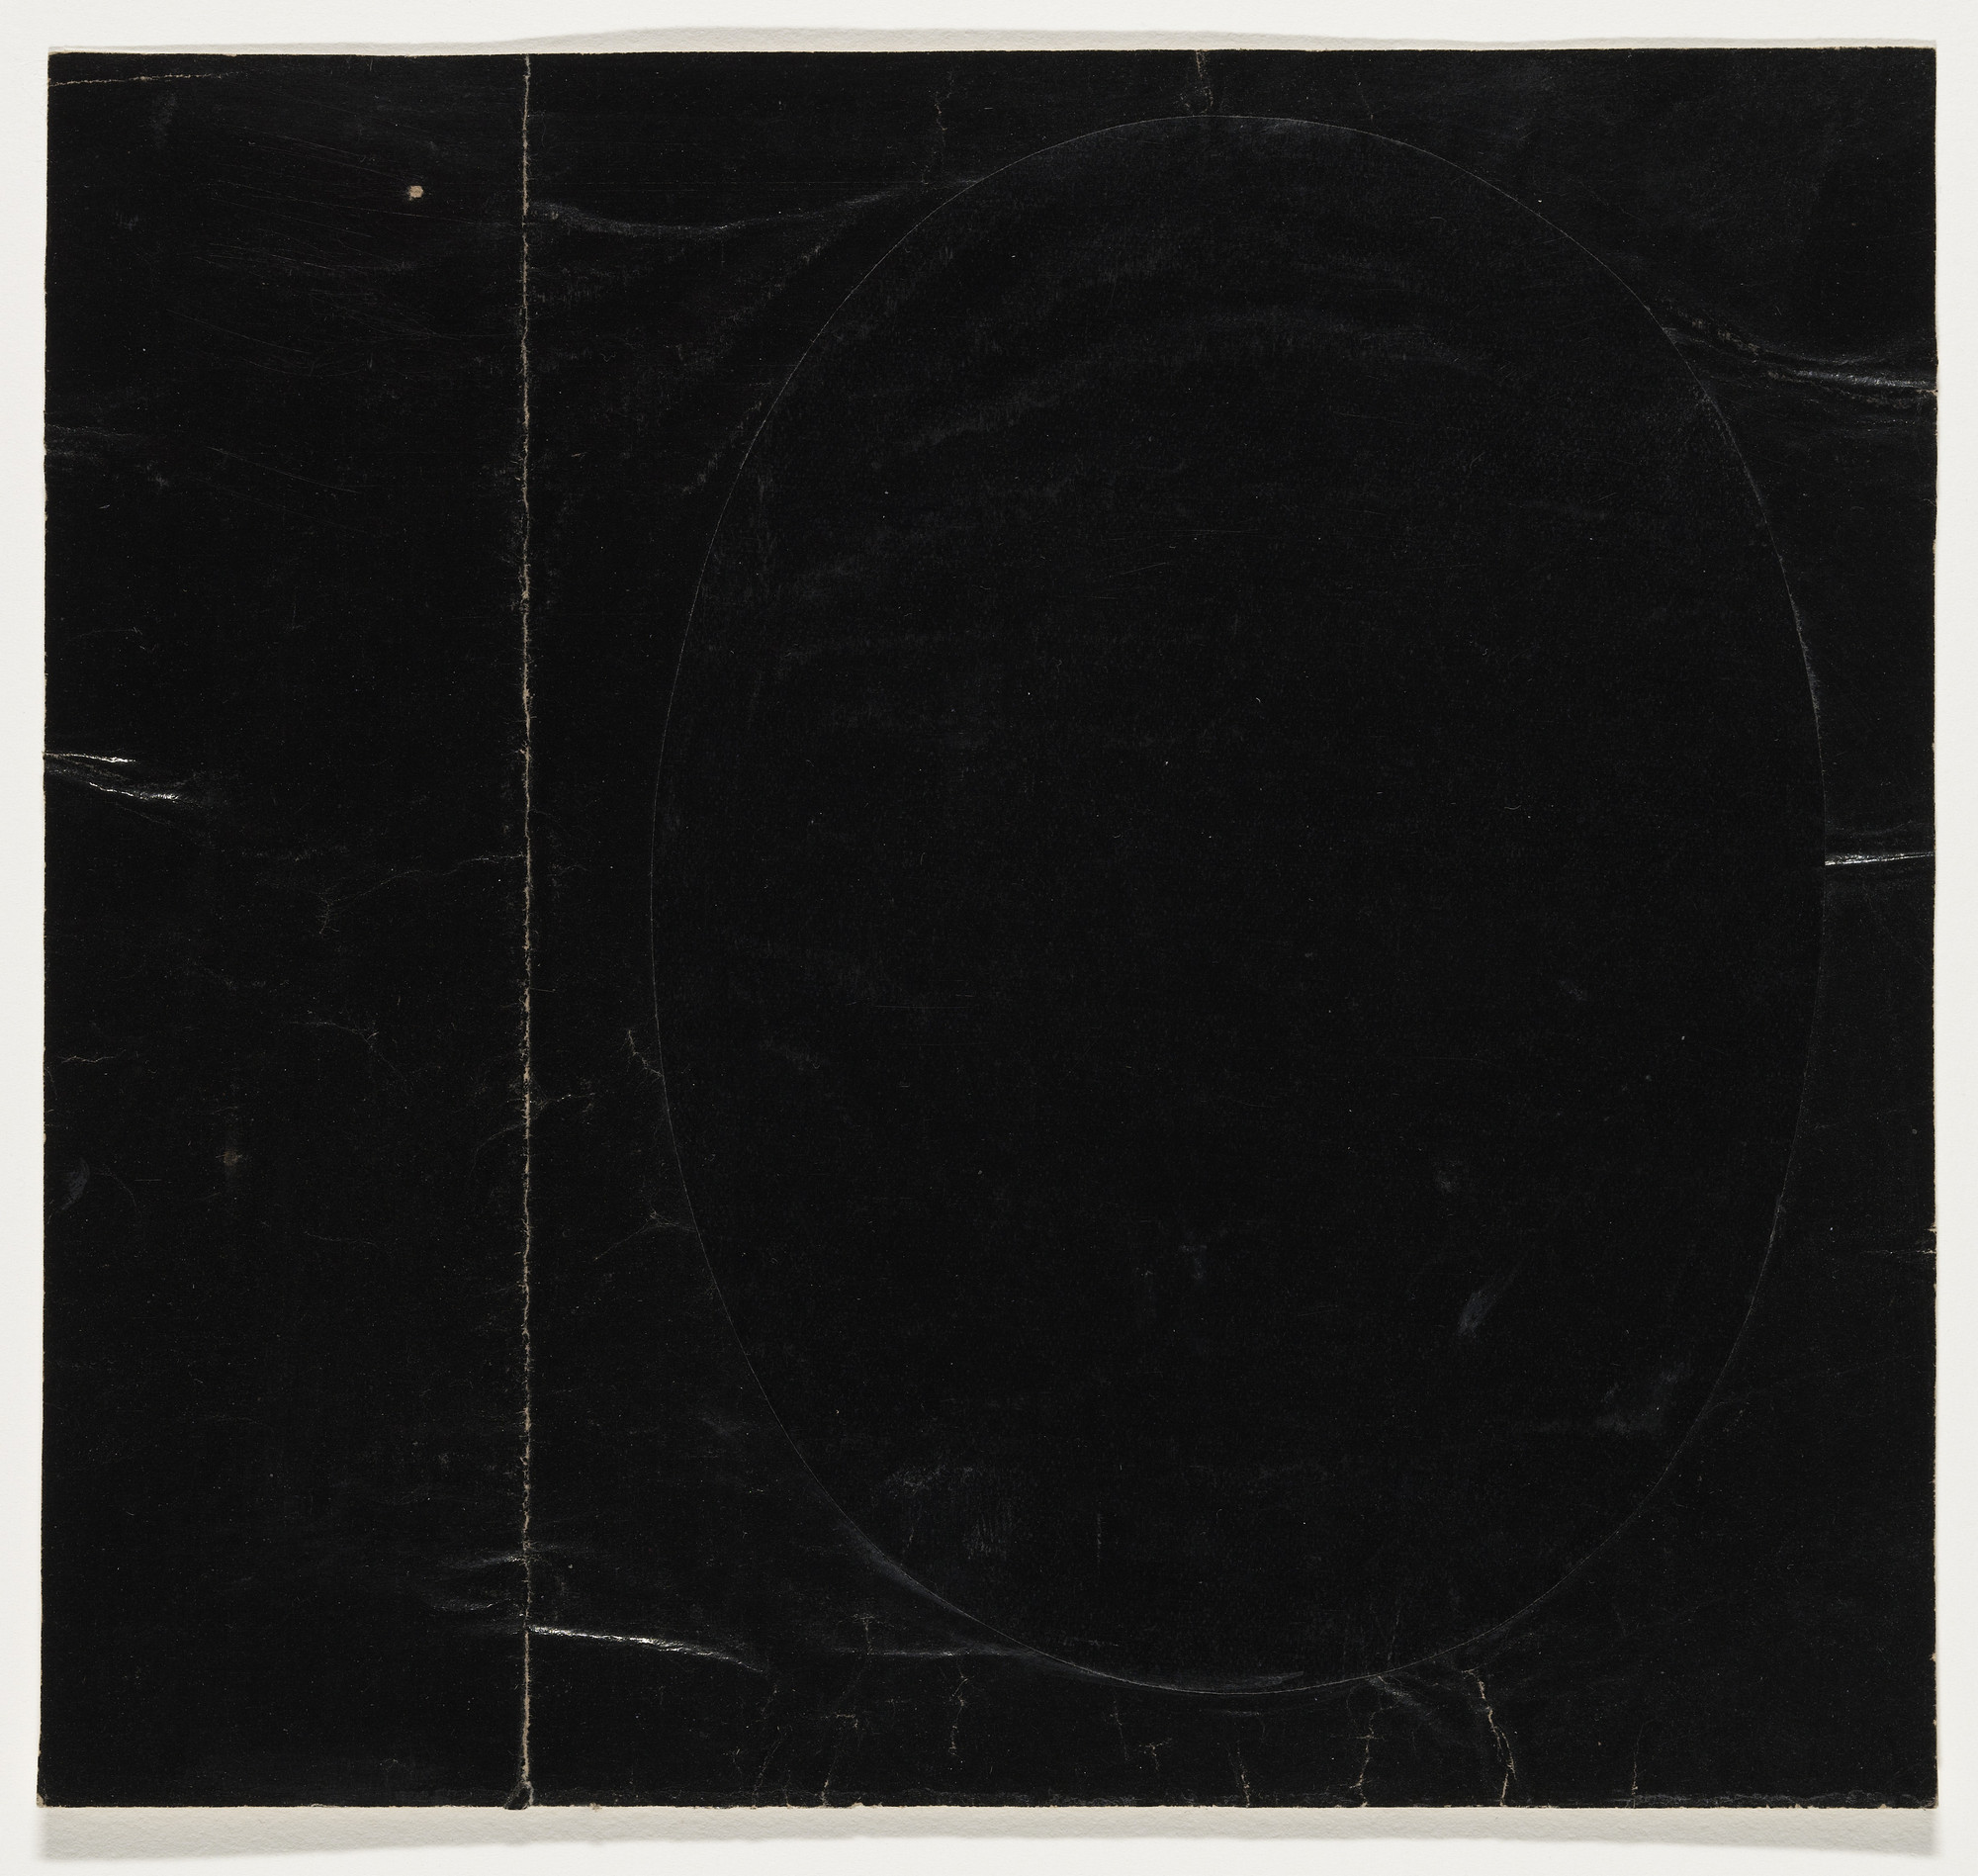 Ellsworth Kelly. Black on Black. 1951